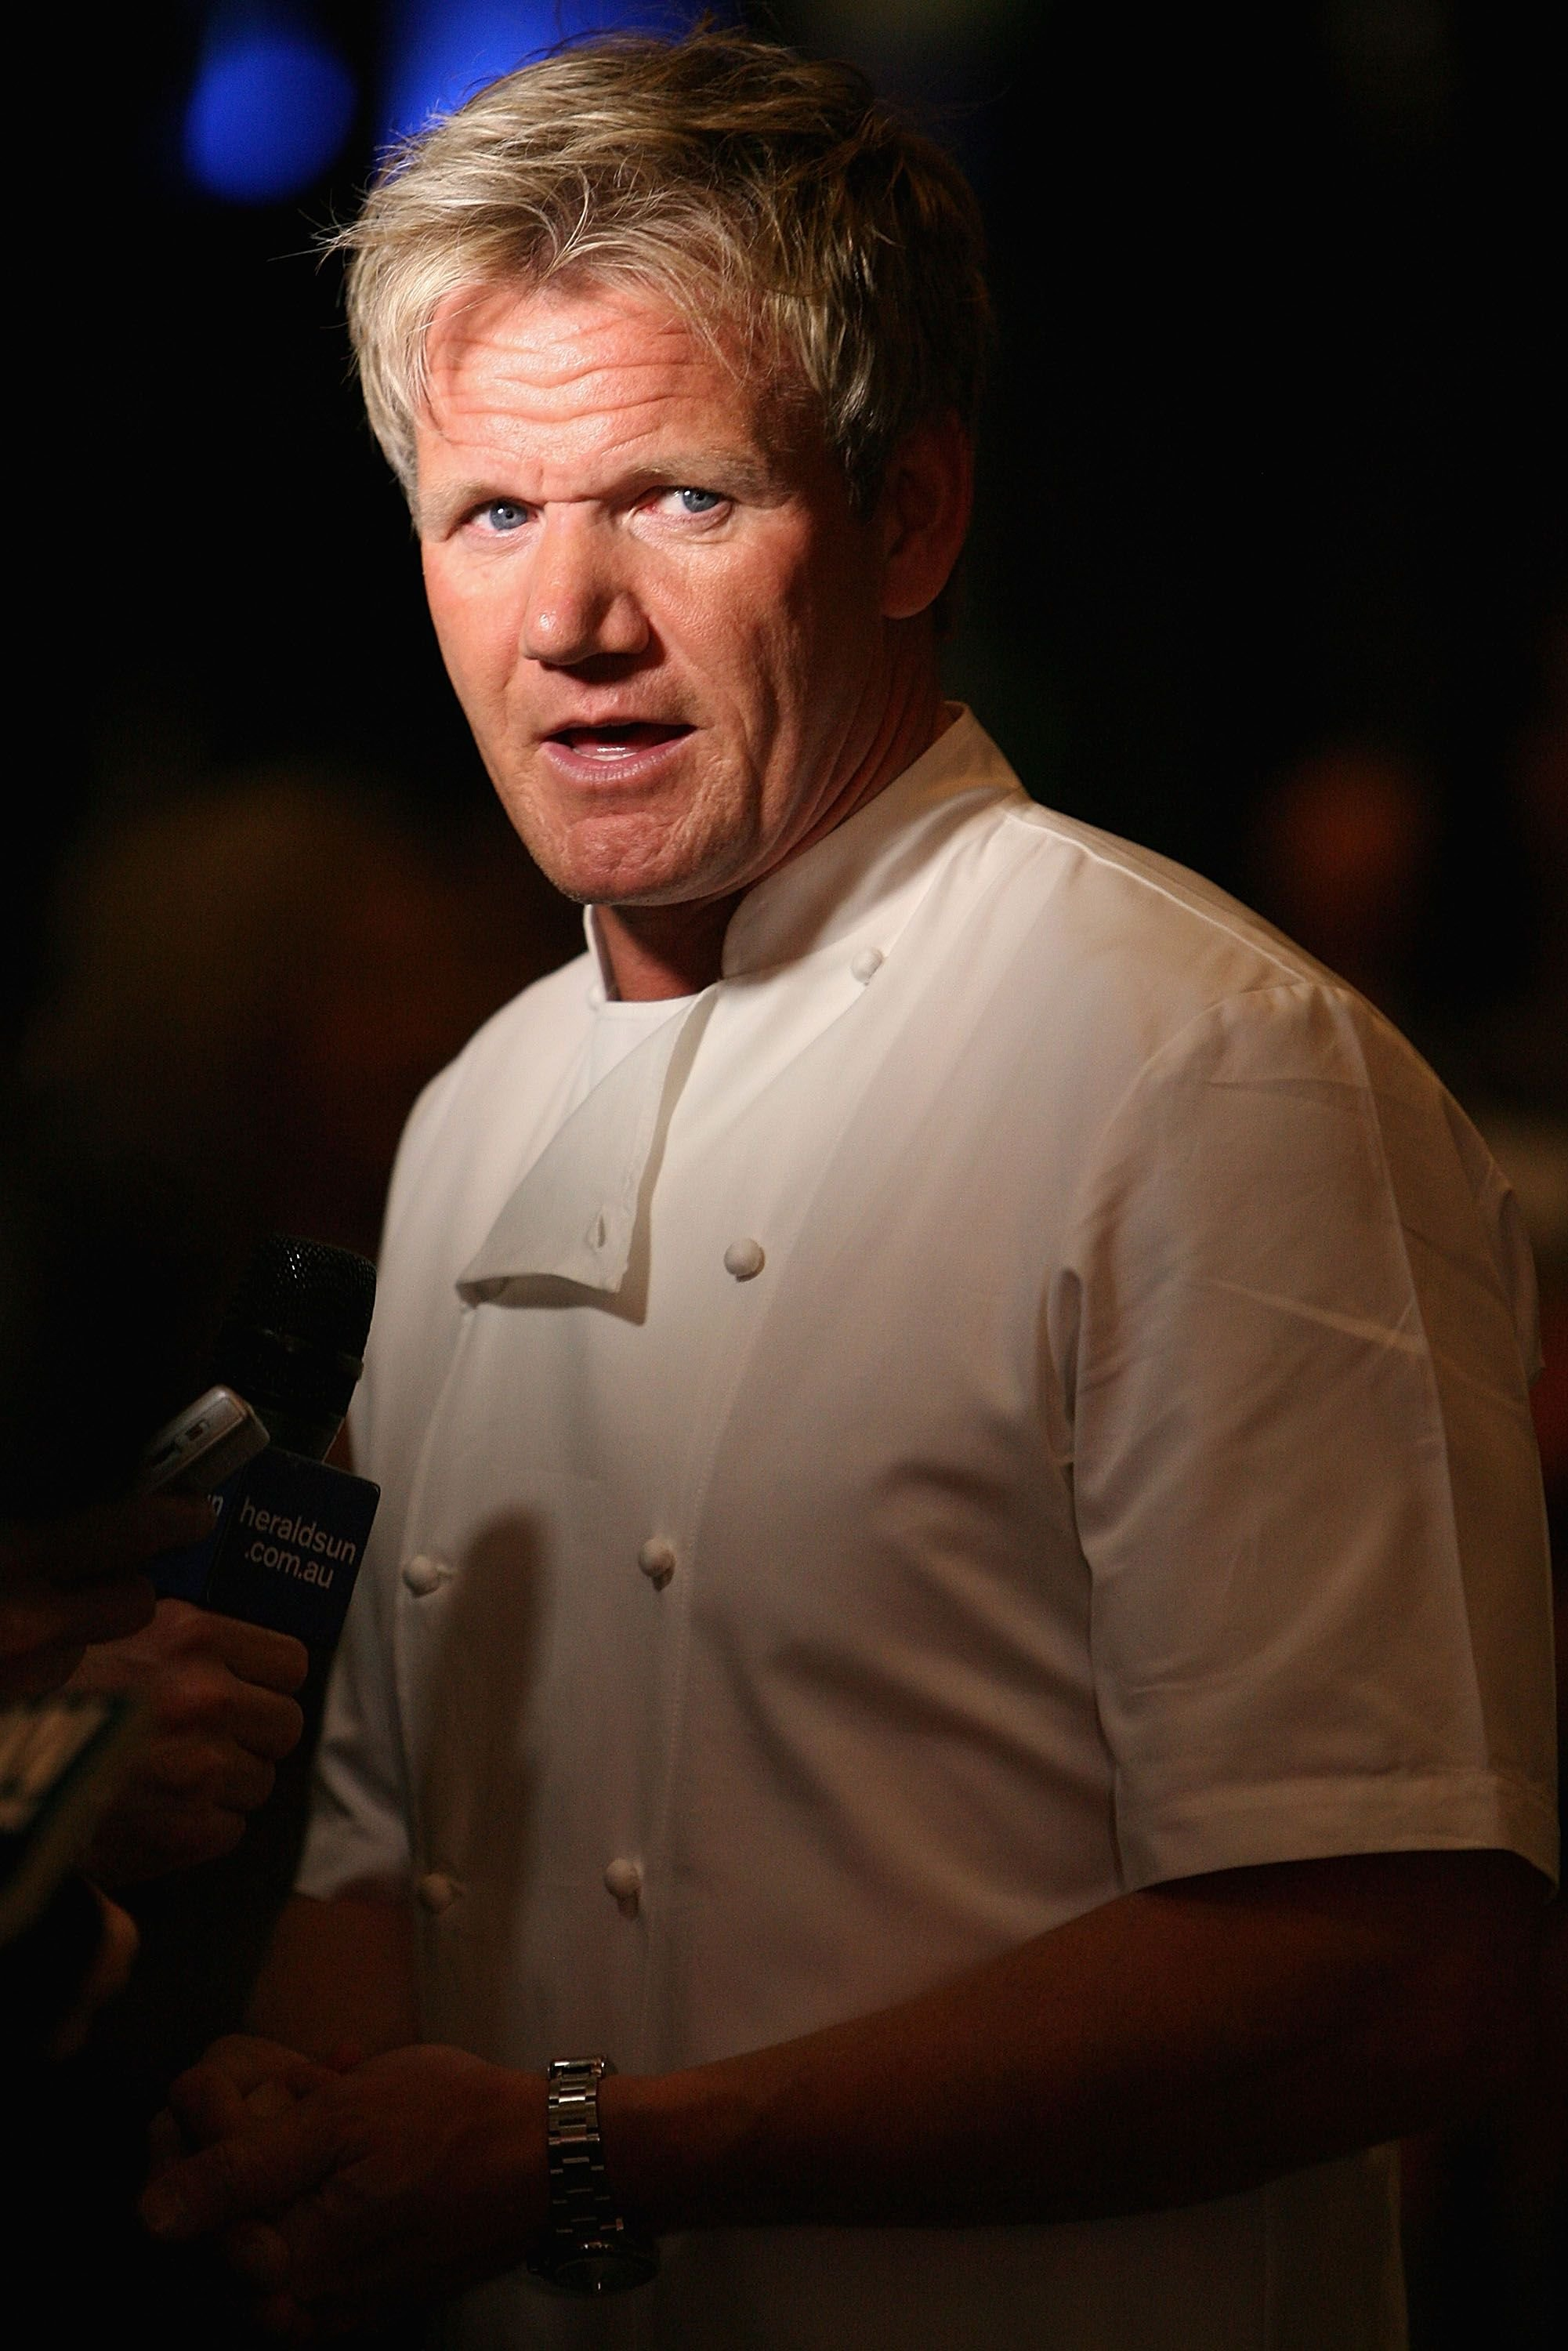 Gordon Ramsay during the opening party of the Crown Metropol hotel on April 21, 2010 in Melbourne, Australia.   Source: Getty Images